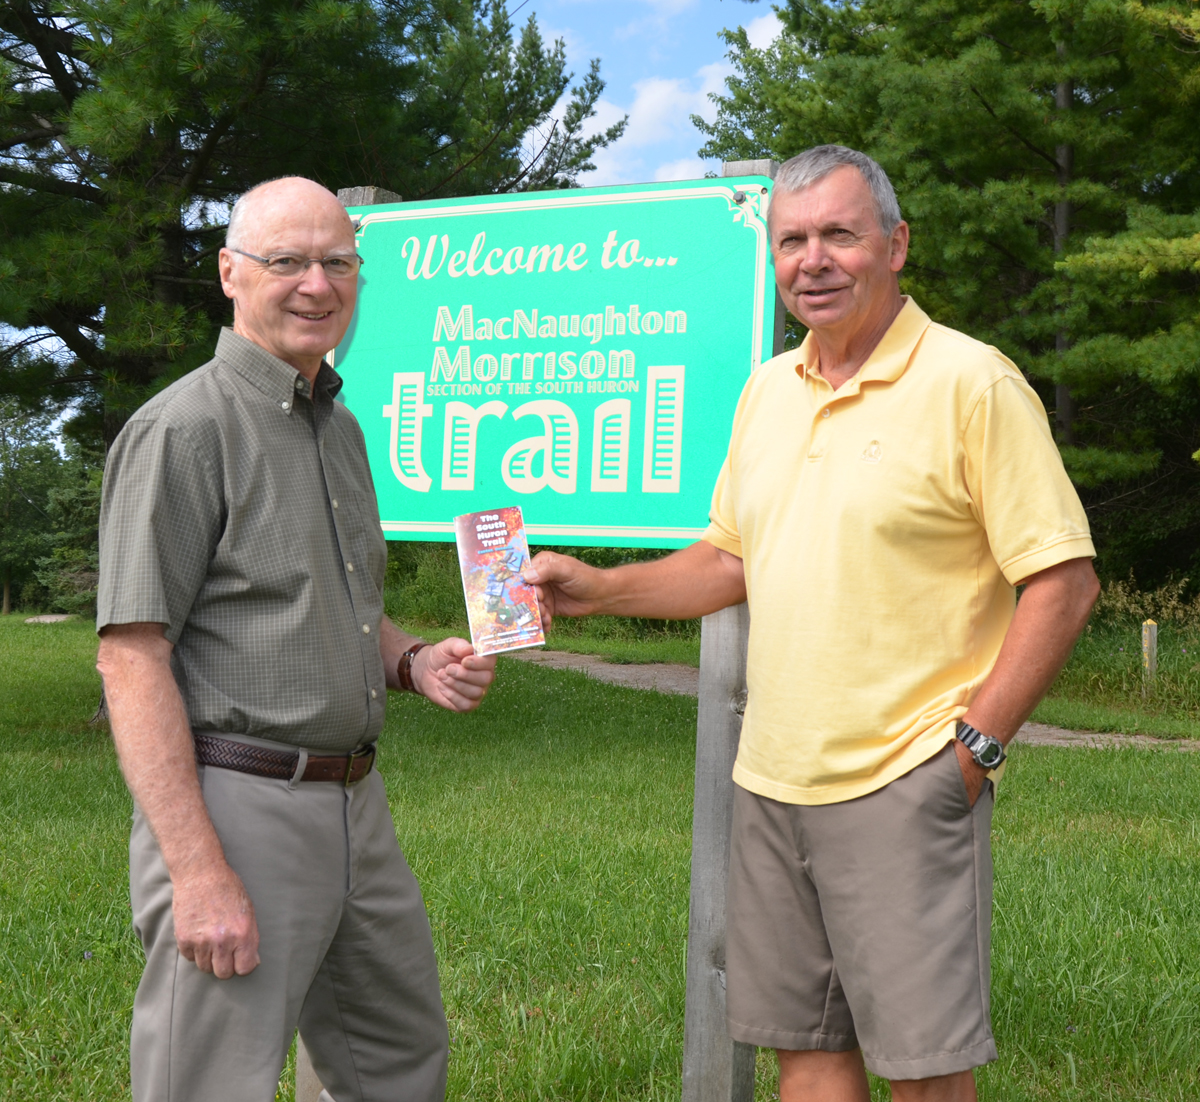 Lorne Rideout is Co-Chair of the Friends of the South Huron Trail and Jim O'Toole is Past Chair. The two volunteers are also members of the community committee organizing celebrations in 2014 to mark the Tenth Anniversary of the MacNaughton-Morrison Section of the South Huron Trail.